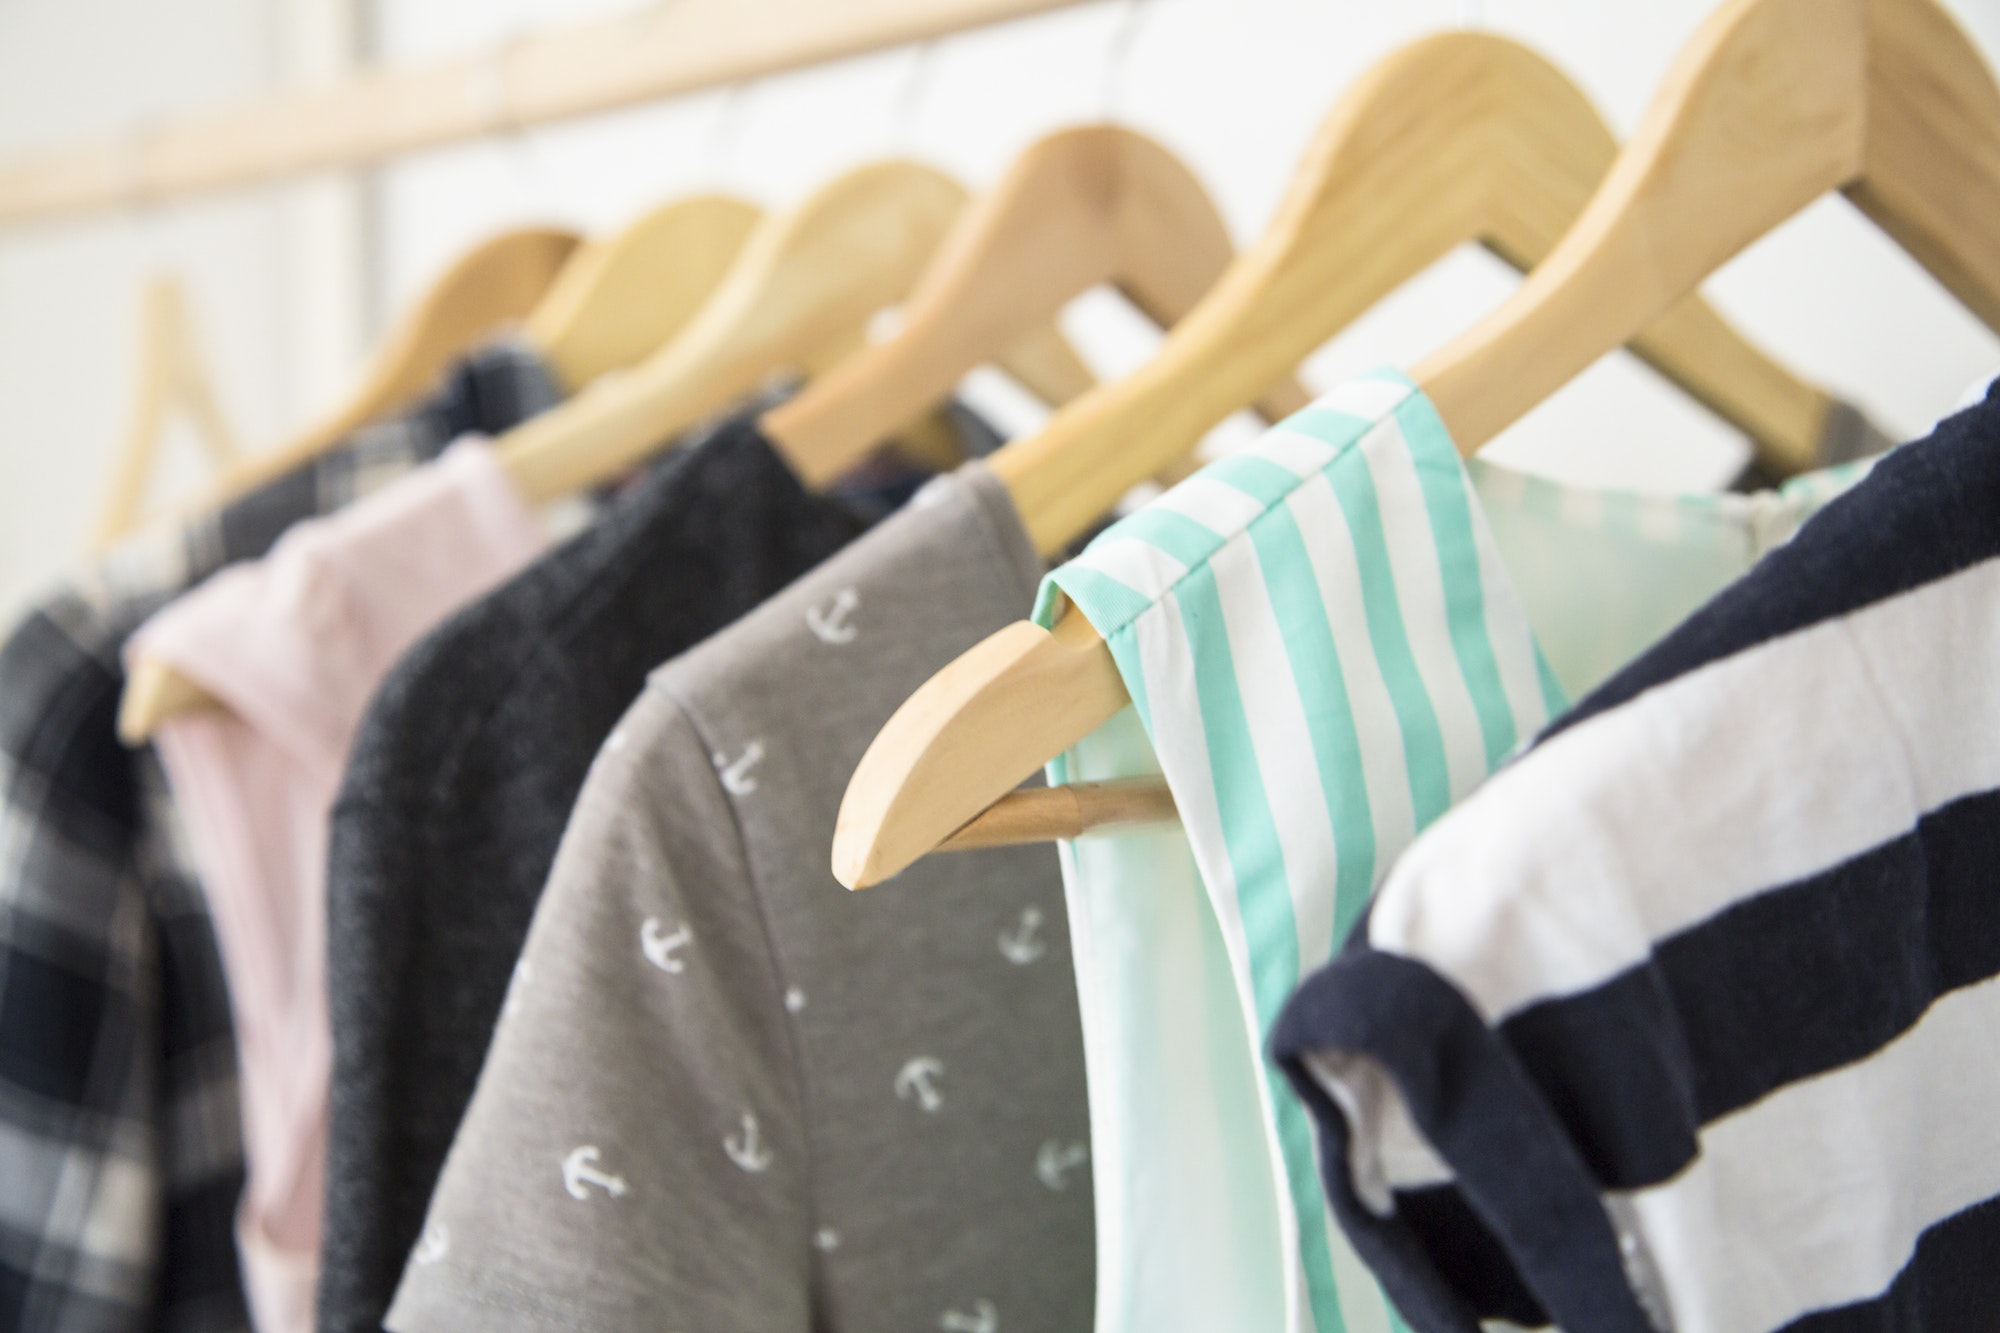 Hangers with woman clothes wardrobe